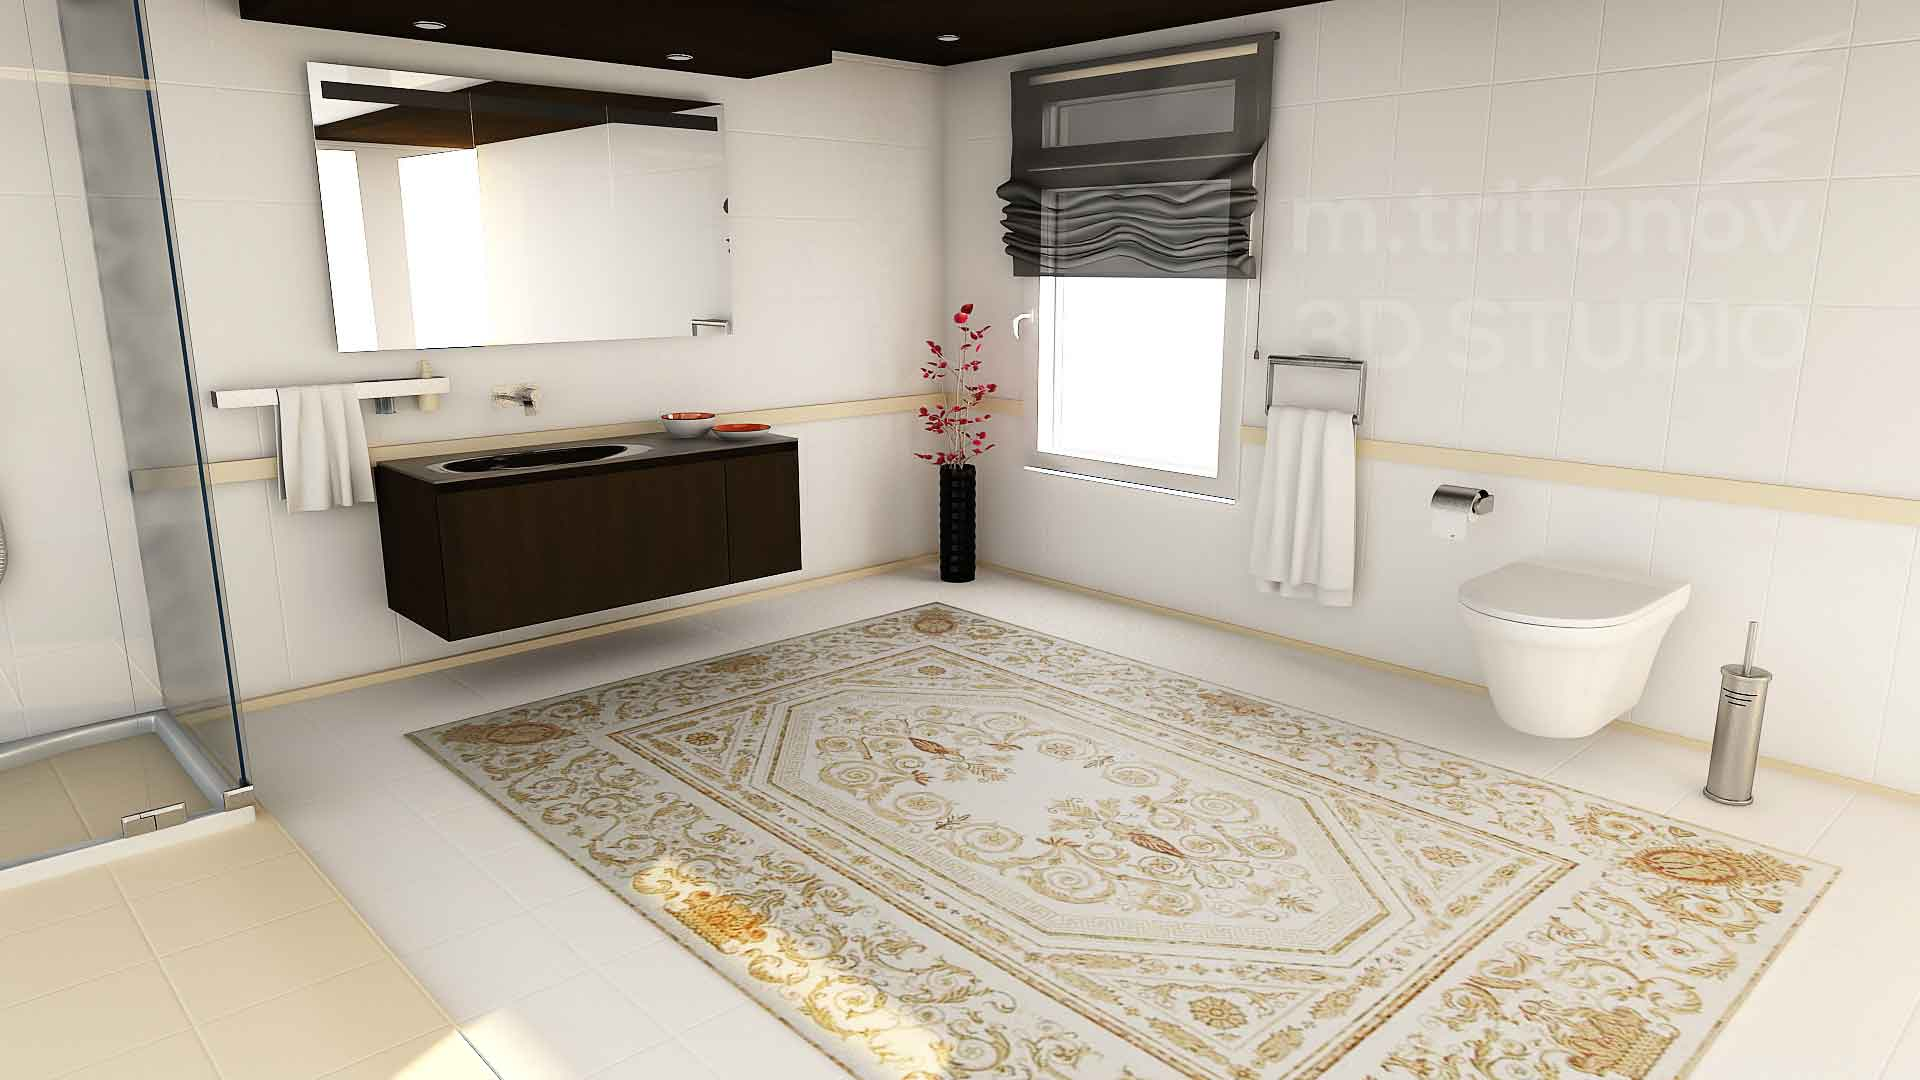 Beautify Your Home With A Mosaic Rug Tile Mozaico Blog